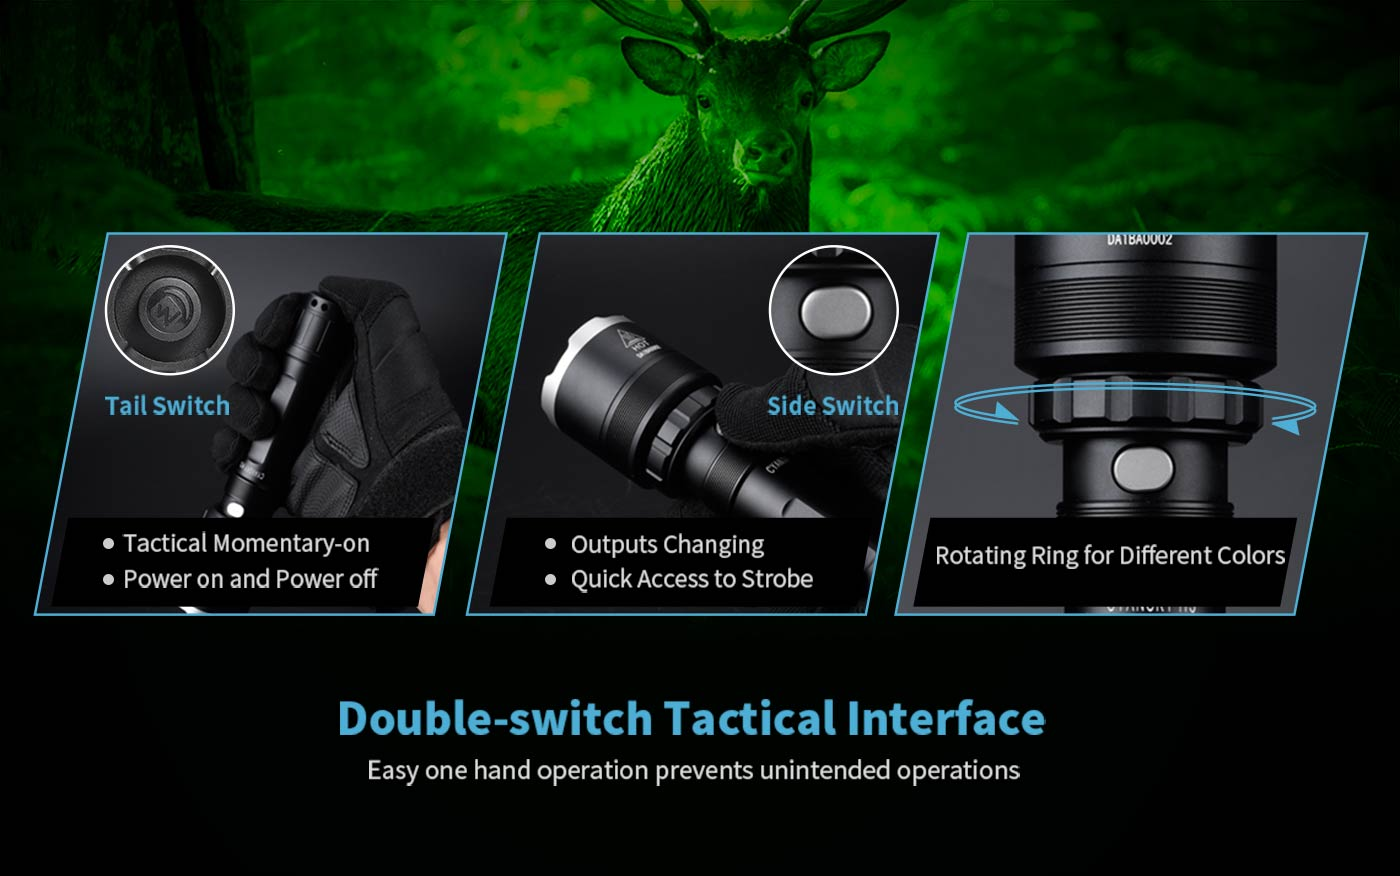 dual-switch hunting flashlight, led torch for hunters, portable led torch